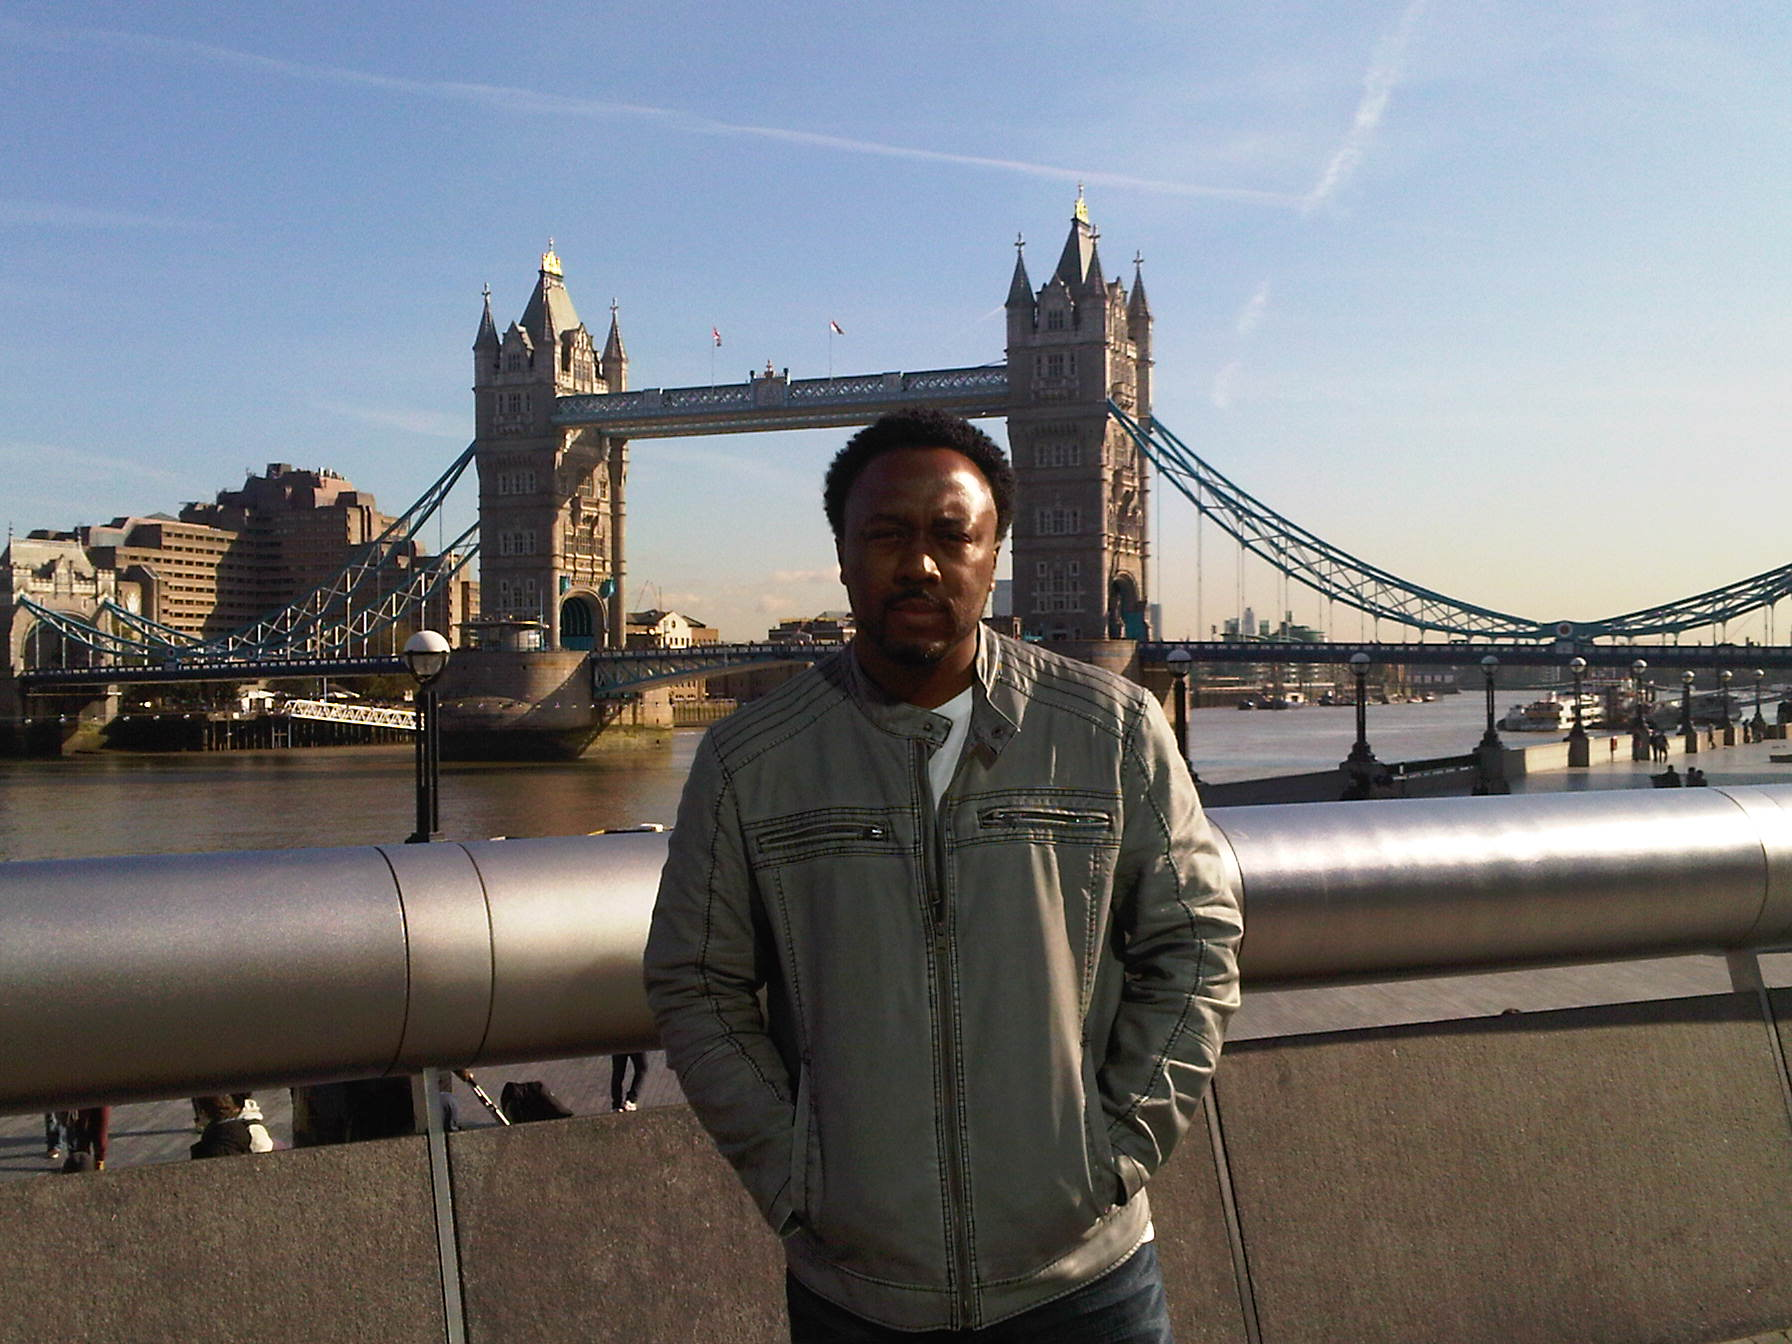 Roger in front of The Tower Bridge